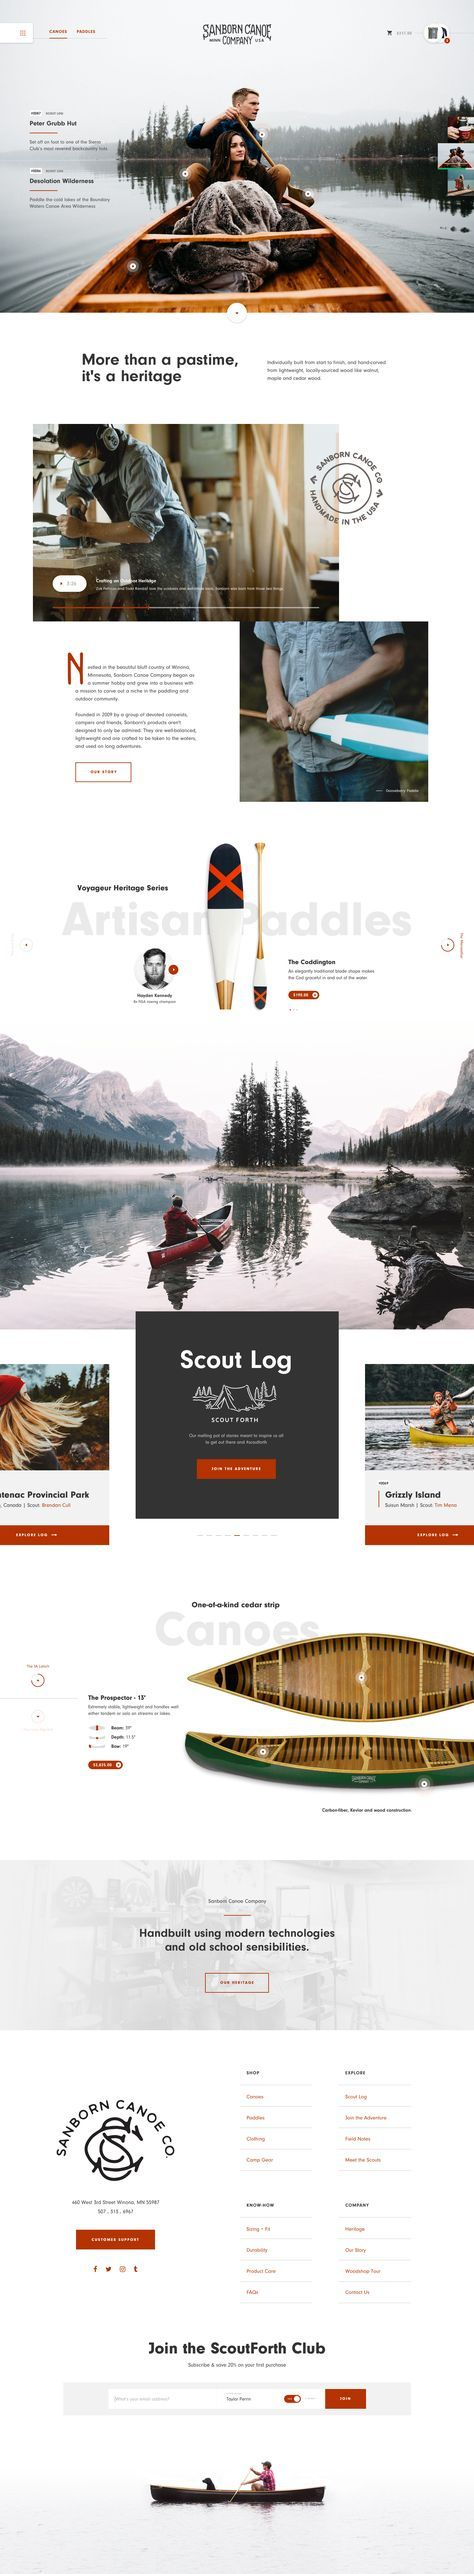 Sanborn Canoe Co. by Taylor Perrin #UI #UX